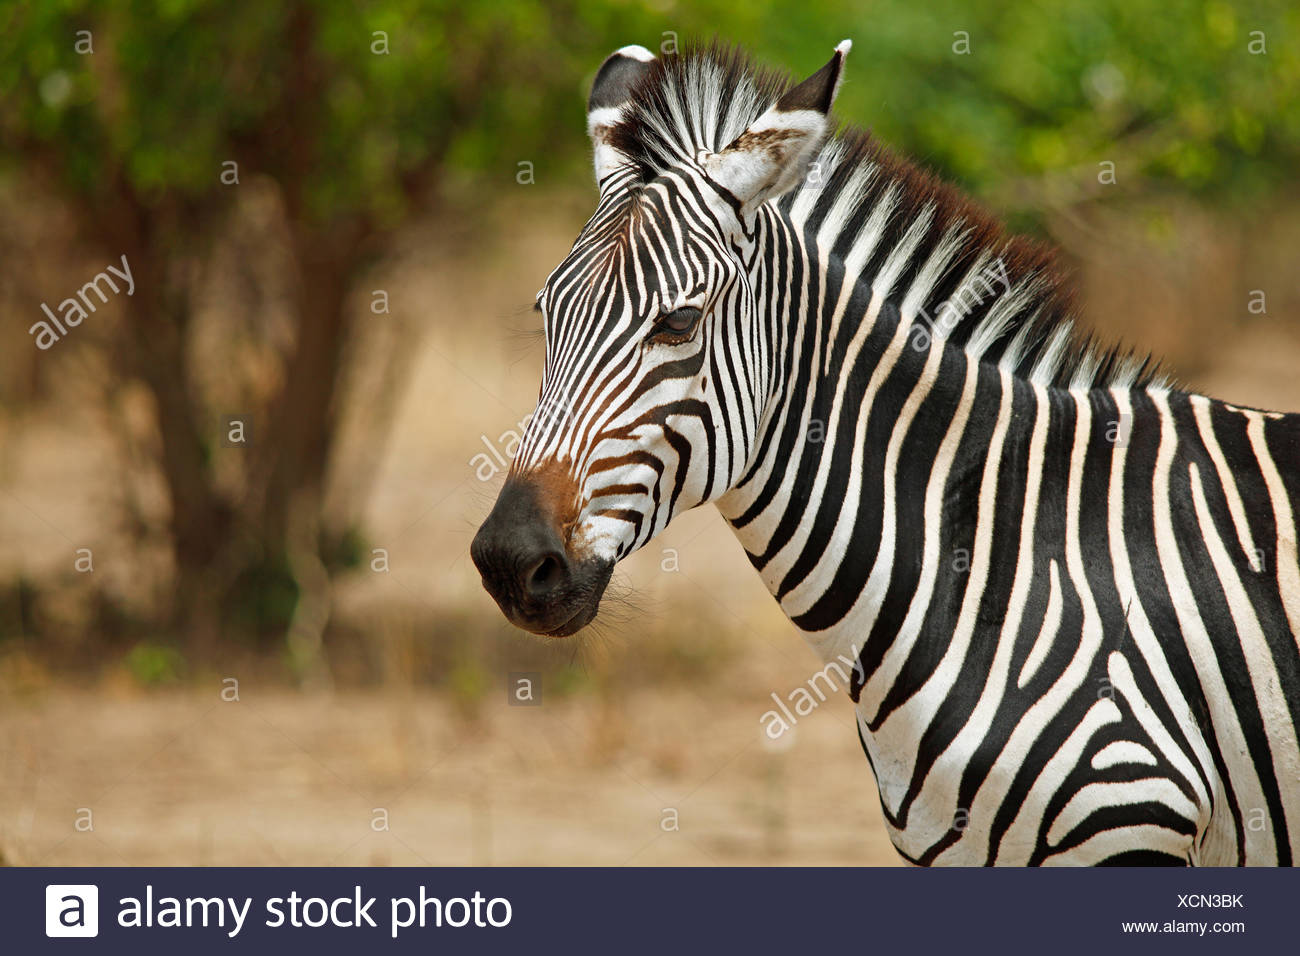 Plains Zebra (Equus quagga), animal portrait, South Luangwa National Park, Zambia - Stock Image